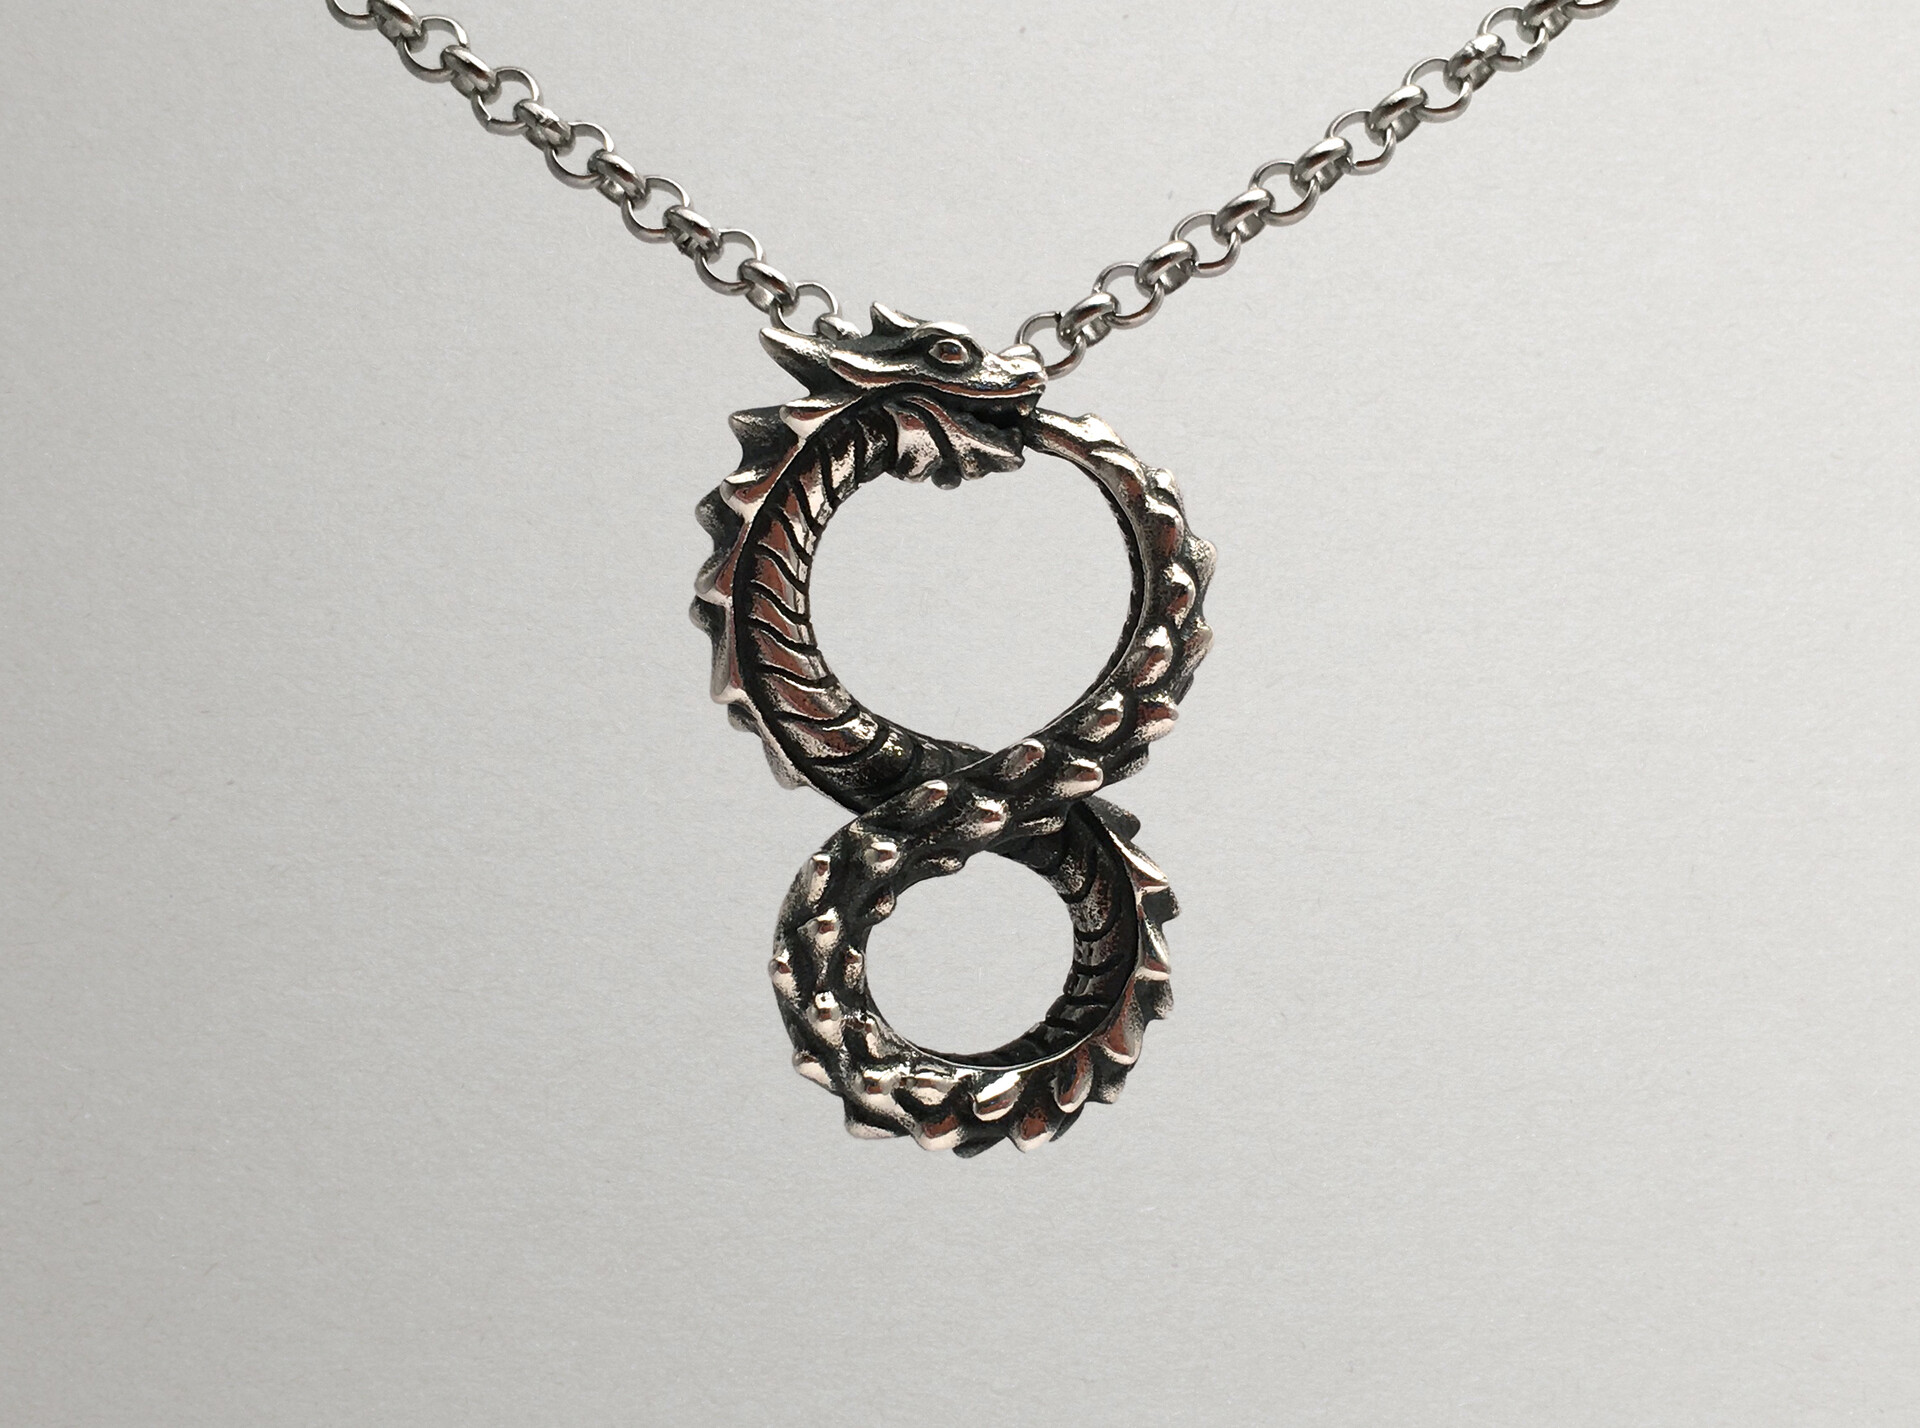 Ken calvert ouroboros antique 1